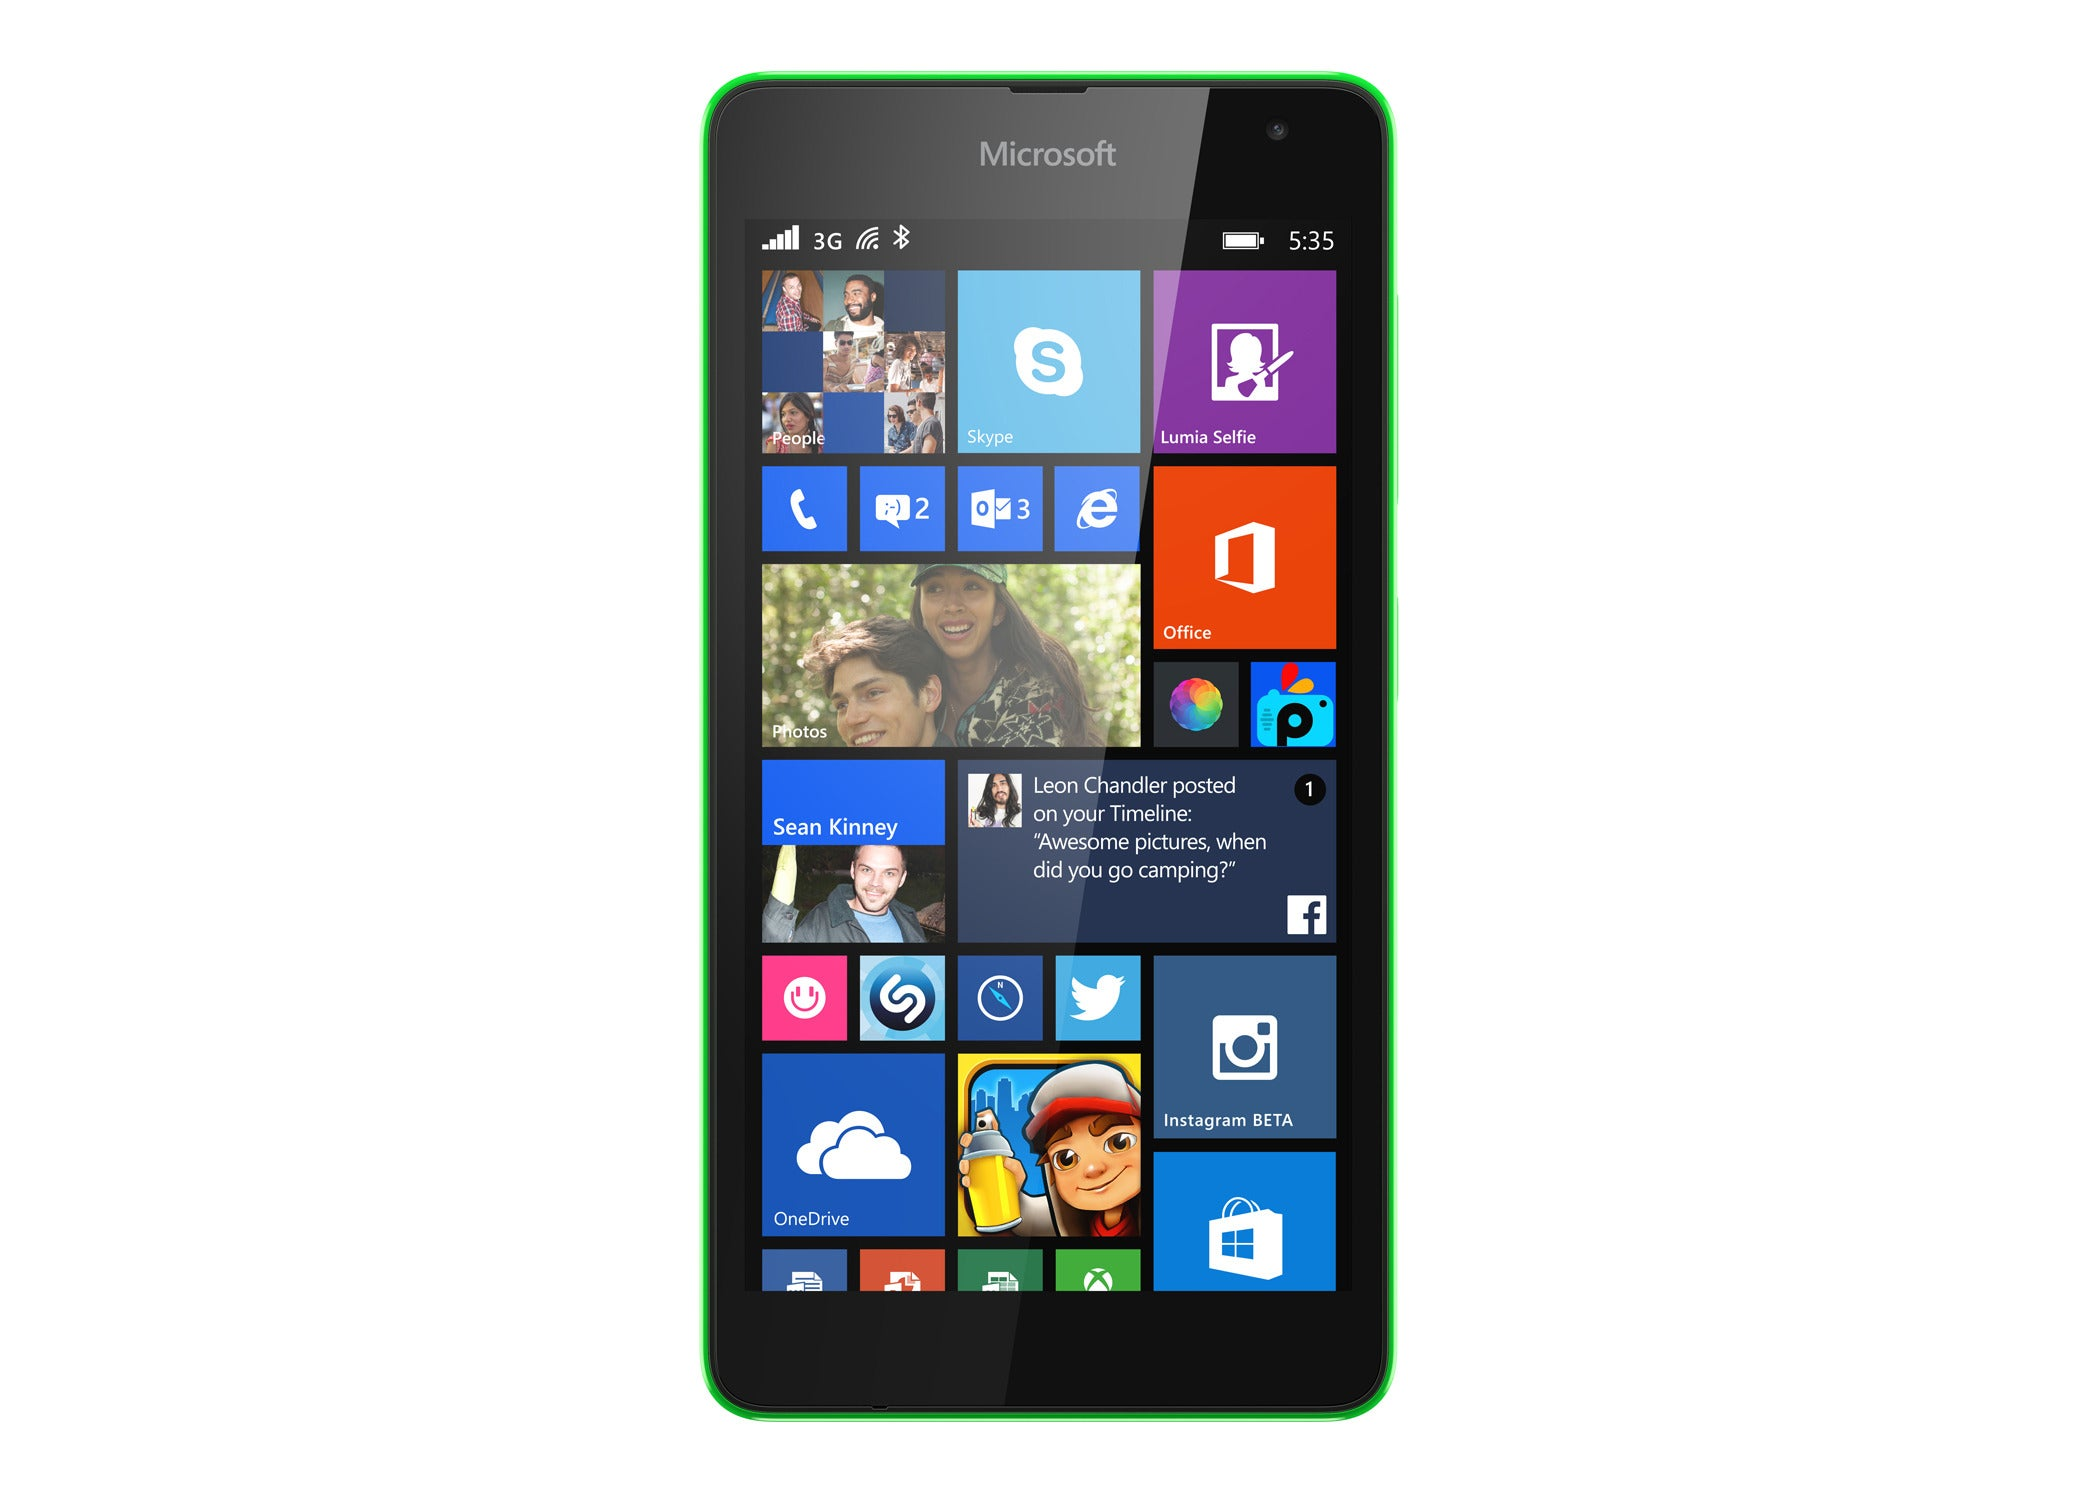 The Microsoft Lumia 535.